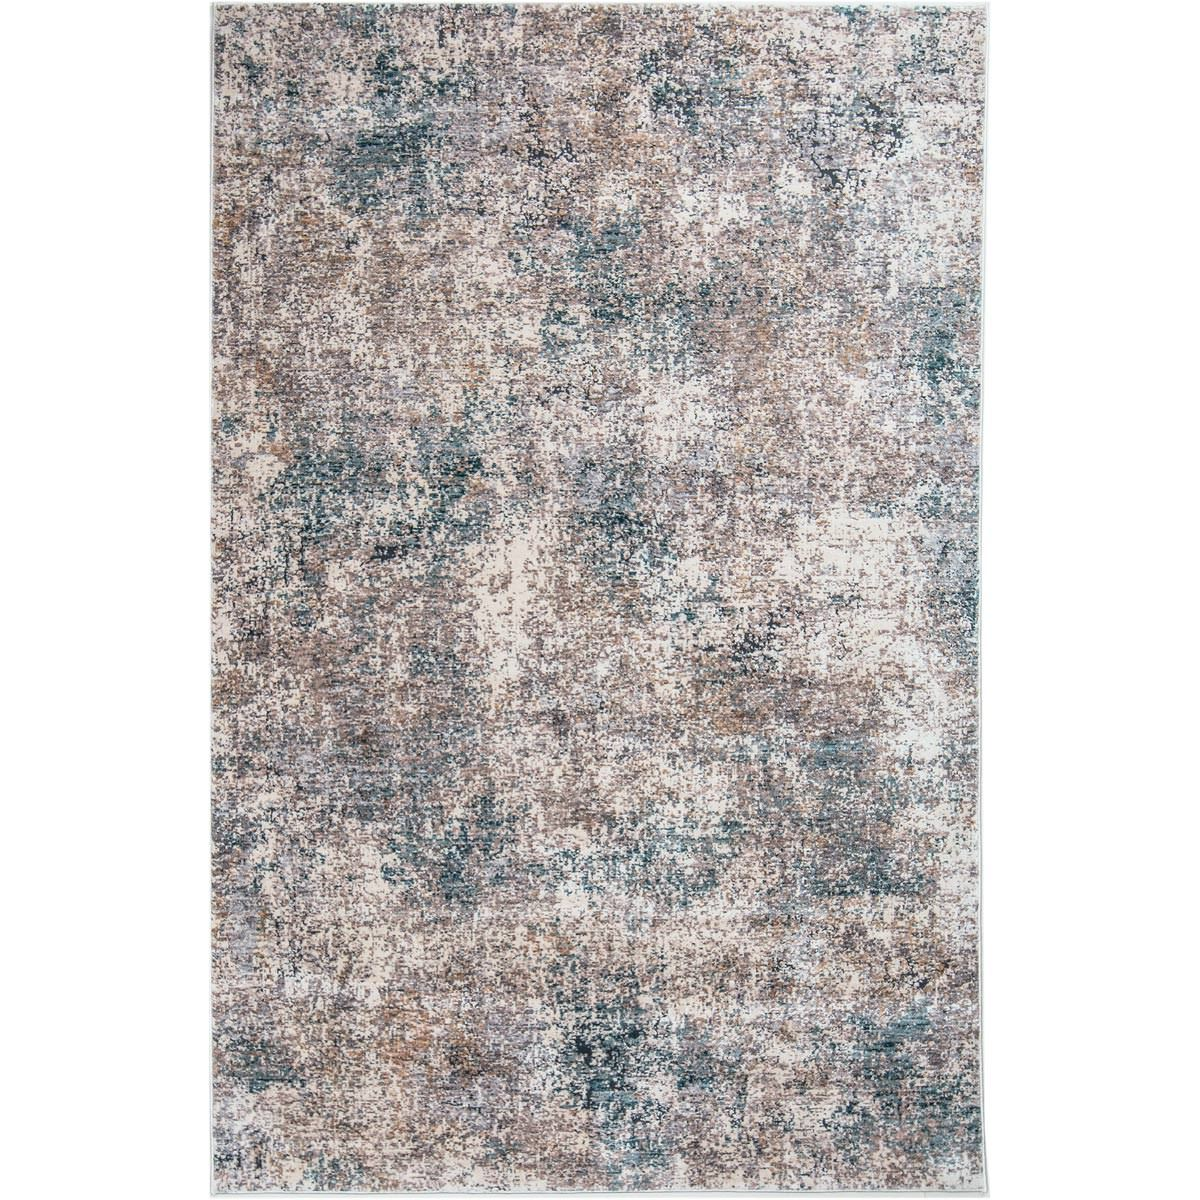 Miami Rug 01 Yellow/Blue/Grey 1